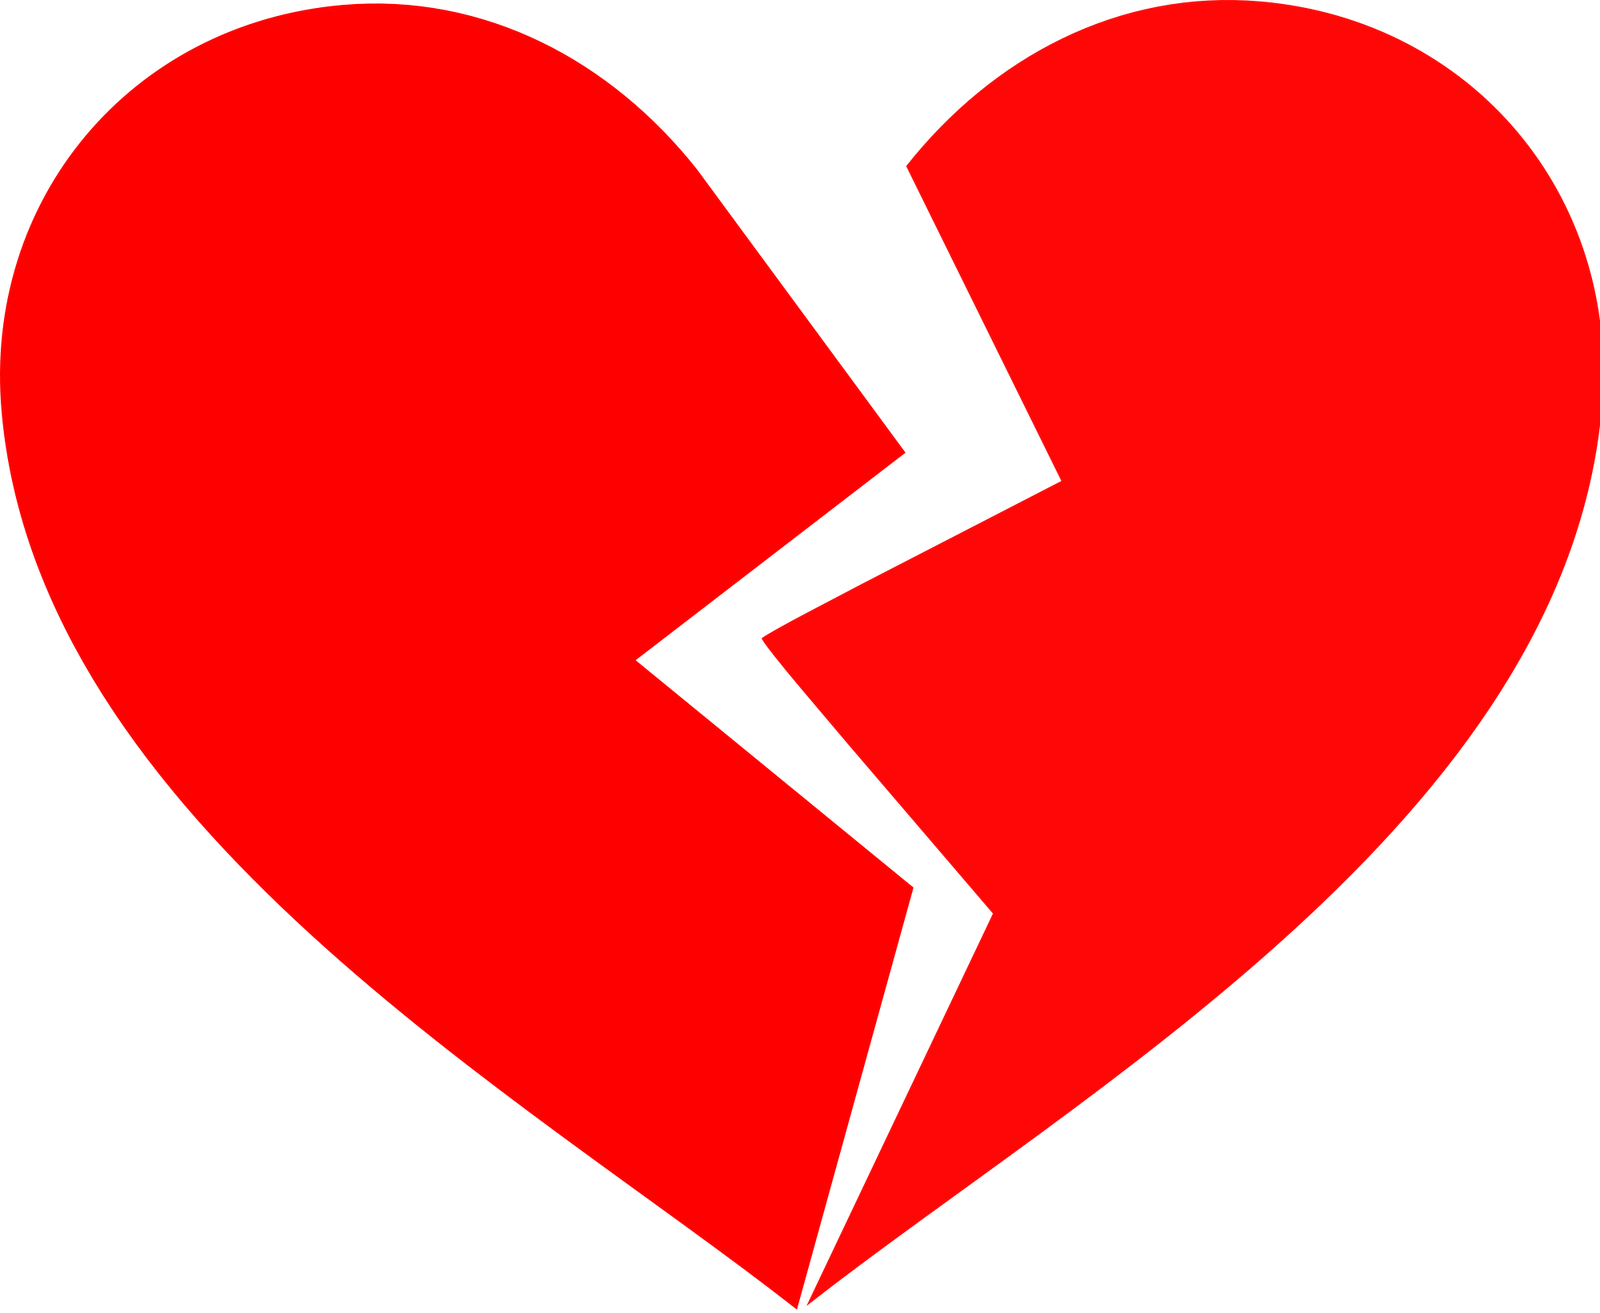 collection of broken. Heat clipart multiple heart